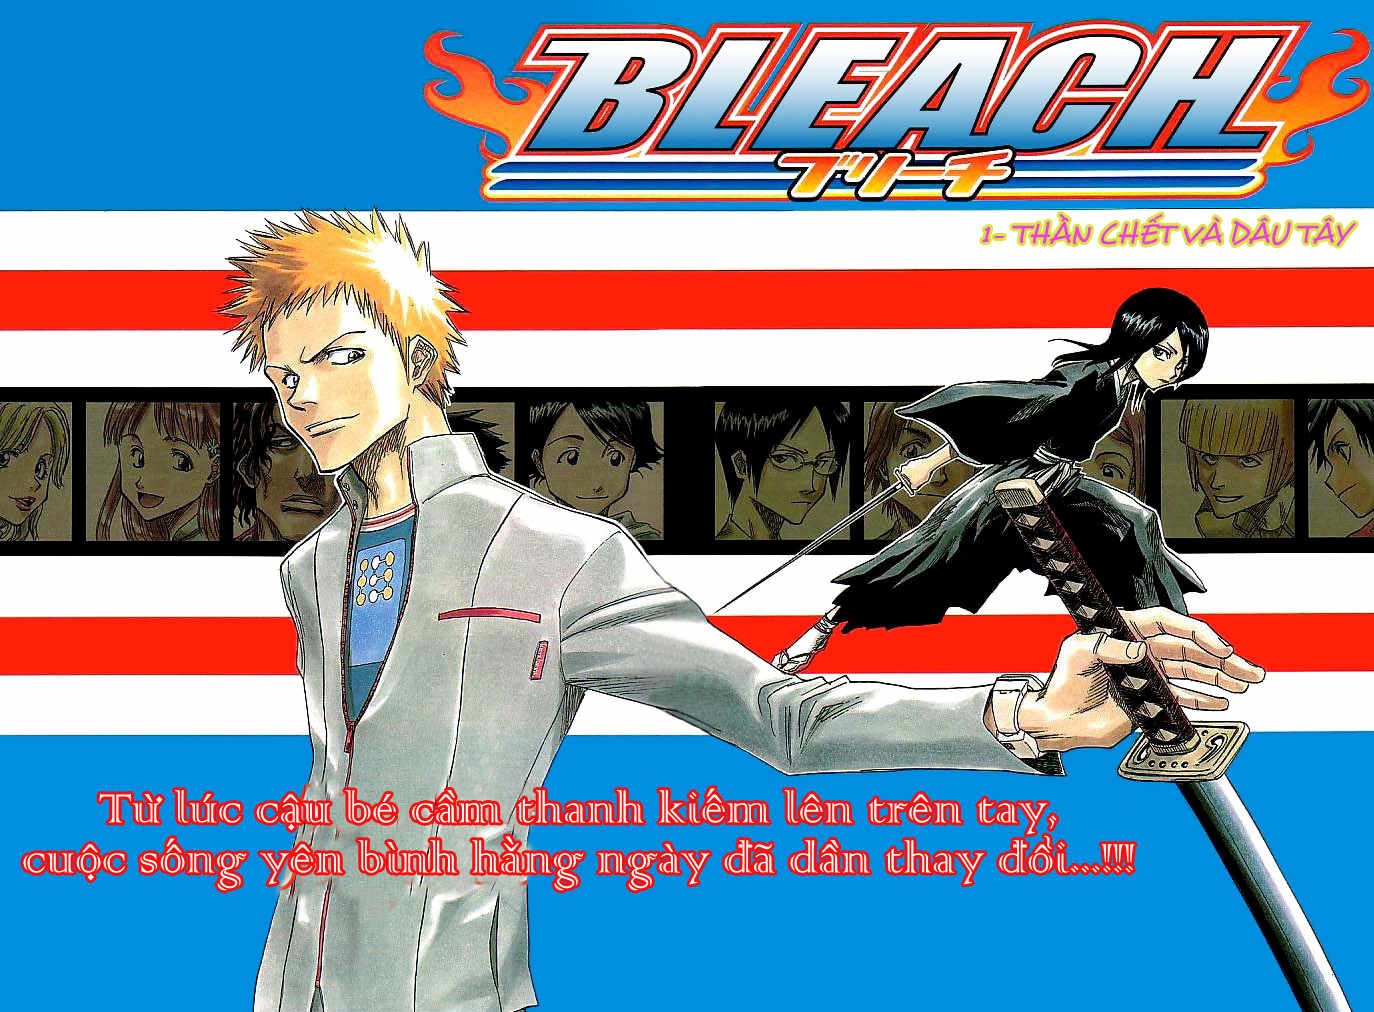 Bleach - promusicinstruments.com